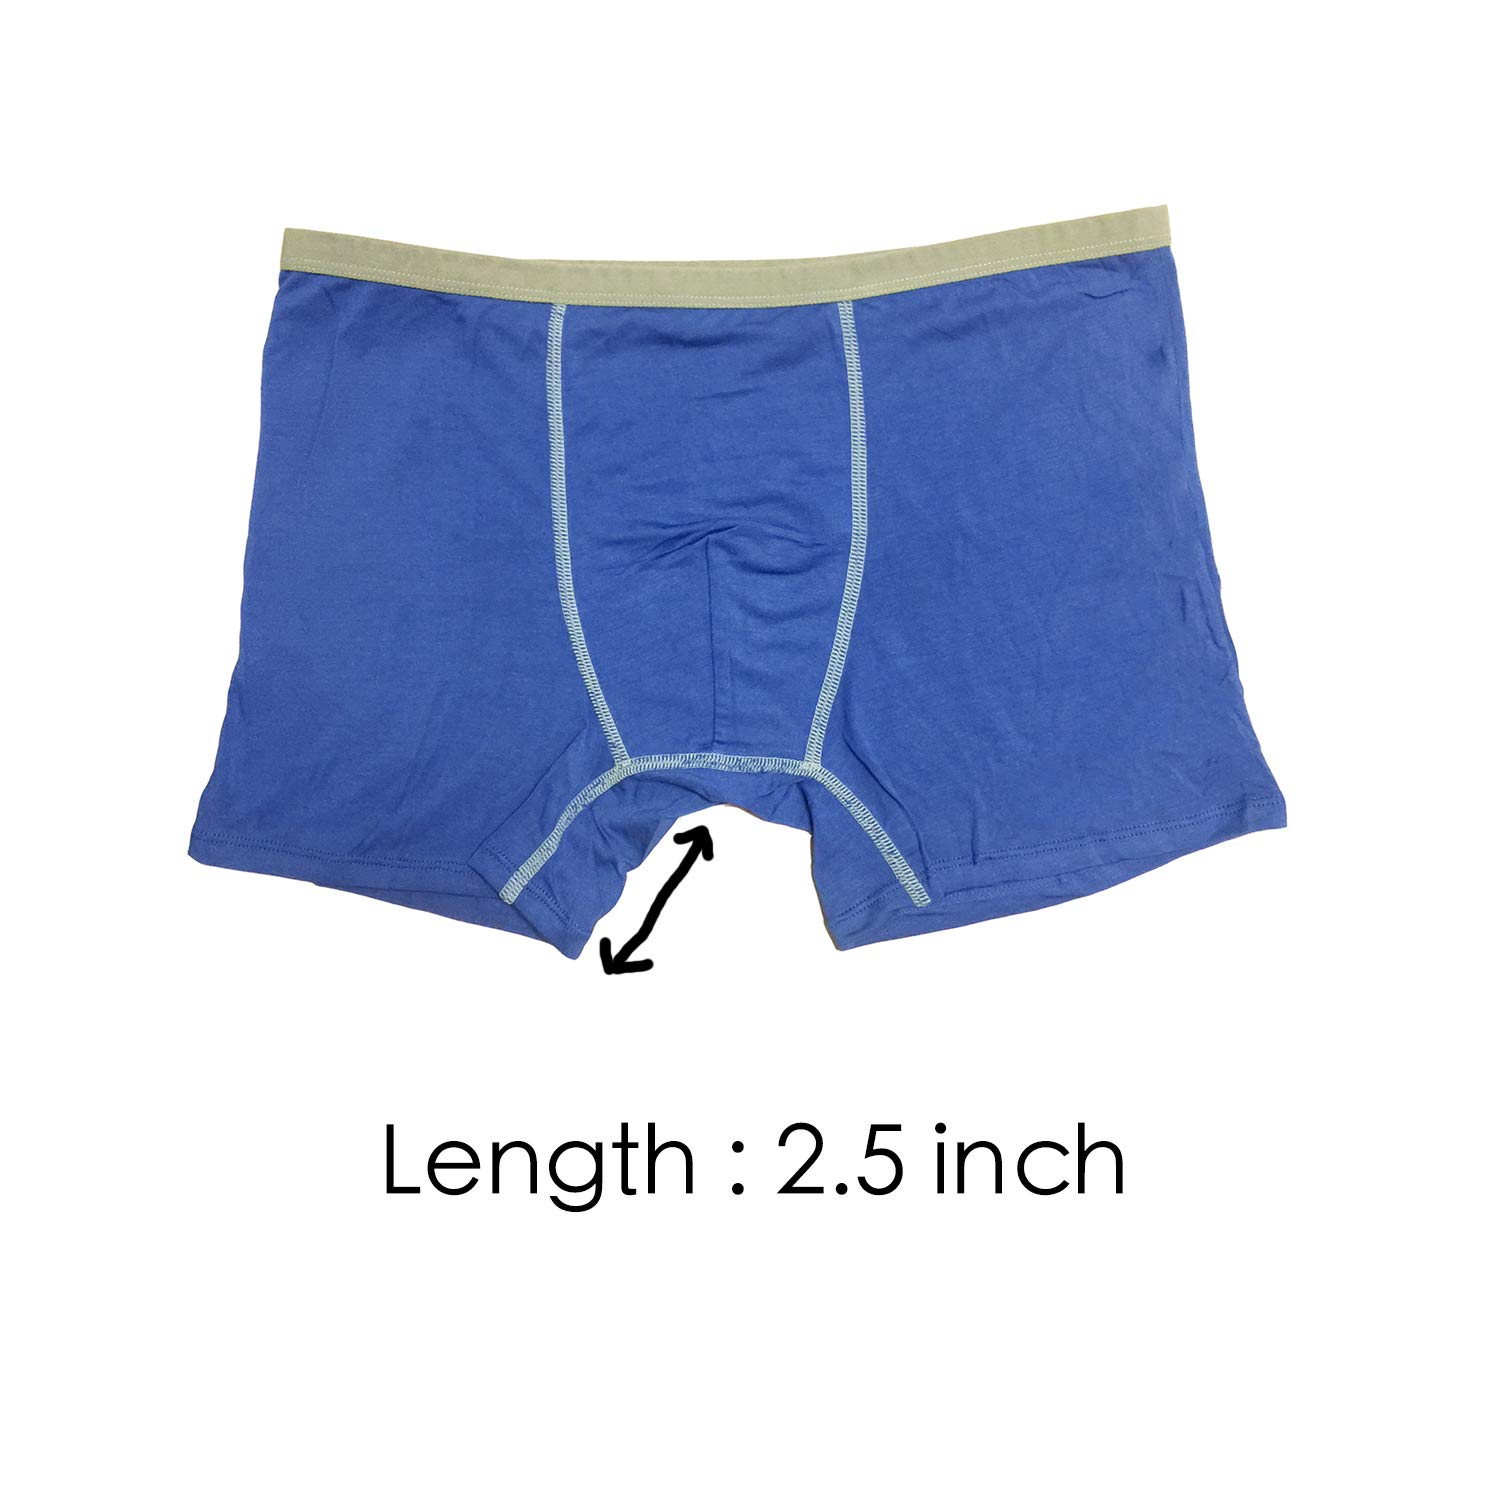 BRIGHT GG Boxer Briefs Mens Underwear Men Pack Soft Modal Healthy Breathable Underwear